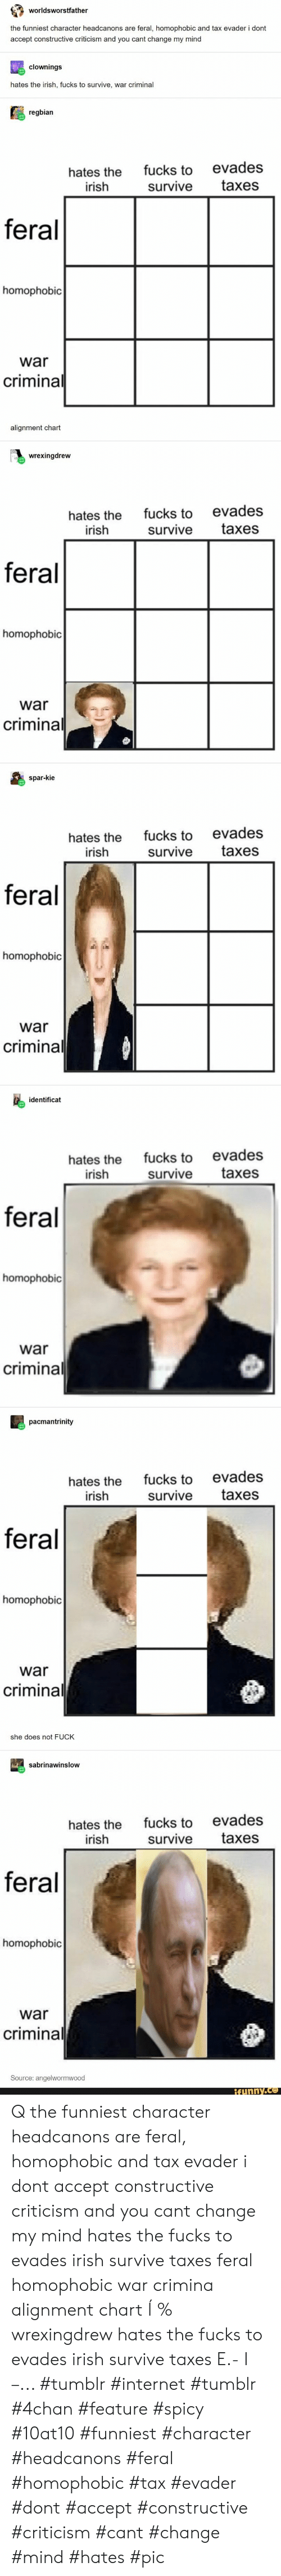 feral: worldsworstfather  the funniest character headcanons are feral, homophobic and tax evader i dont  accept constructive criticism and you cant change my mind  clownings  hates the irish, fucks to survive, war criminal  regbian  evades  fucks to  hates the  irish  taxes  survive  feral  homophobic  war  criminal  alignment chart  wrexingdrew  fucks to evades  hates the  irish  taxes  survive  feral  homophobic  war  criminal  spar-kie  fucks to evades  survive  hates the  irish  taxes  feral  homophobic  war  criminal  identificat  fucks to evades  hates the  irish  taxes  survive  feral  homophobic  war  criminal  pacmantrinity  fucks to evades  survive  hates the  irish  taxes  feral  homophobic  war  criminal  she does not FUCK  sabrinawinslow  fucks to evades  hates the  irish  taxes  survive  feral  homophobic  war  criminal  Source: angelwormwood  ifunny.co Q the funniest character headcanons are feral, homophobic and tax evader i dont accept constructive criticism and you cant change my mind hates the fucks to evades irish survive taxes feral homophobic war crimina alignment chart Í % wrexingdrew hates the fucks to evades irish survive taxes E.- I –... #tumblr #internet #tumblr #4chan #feature #spicy #10at10 #funniest #character #headcanons #feral #homophobic #tax #evader #dont #accept #constructive #criticism #cant #change #mind #hates #pic